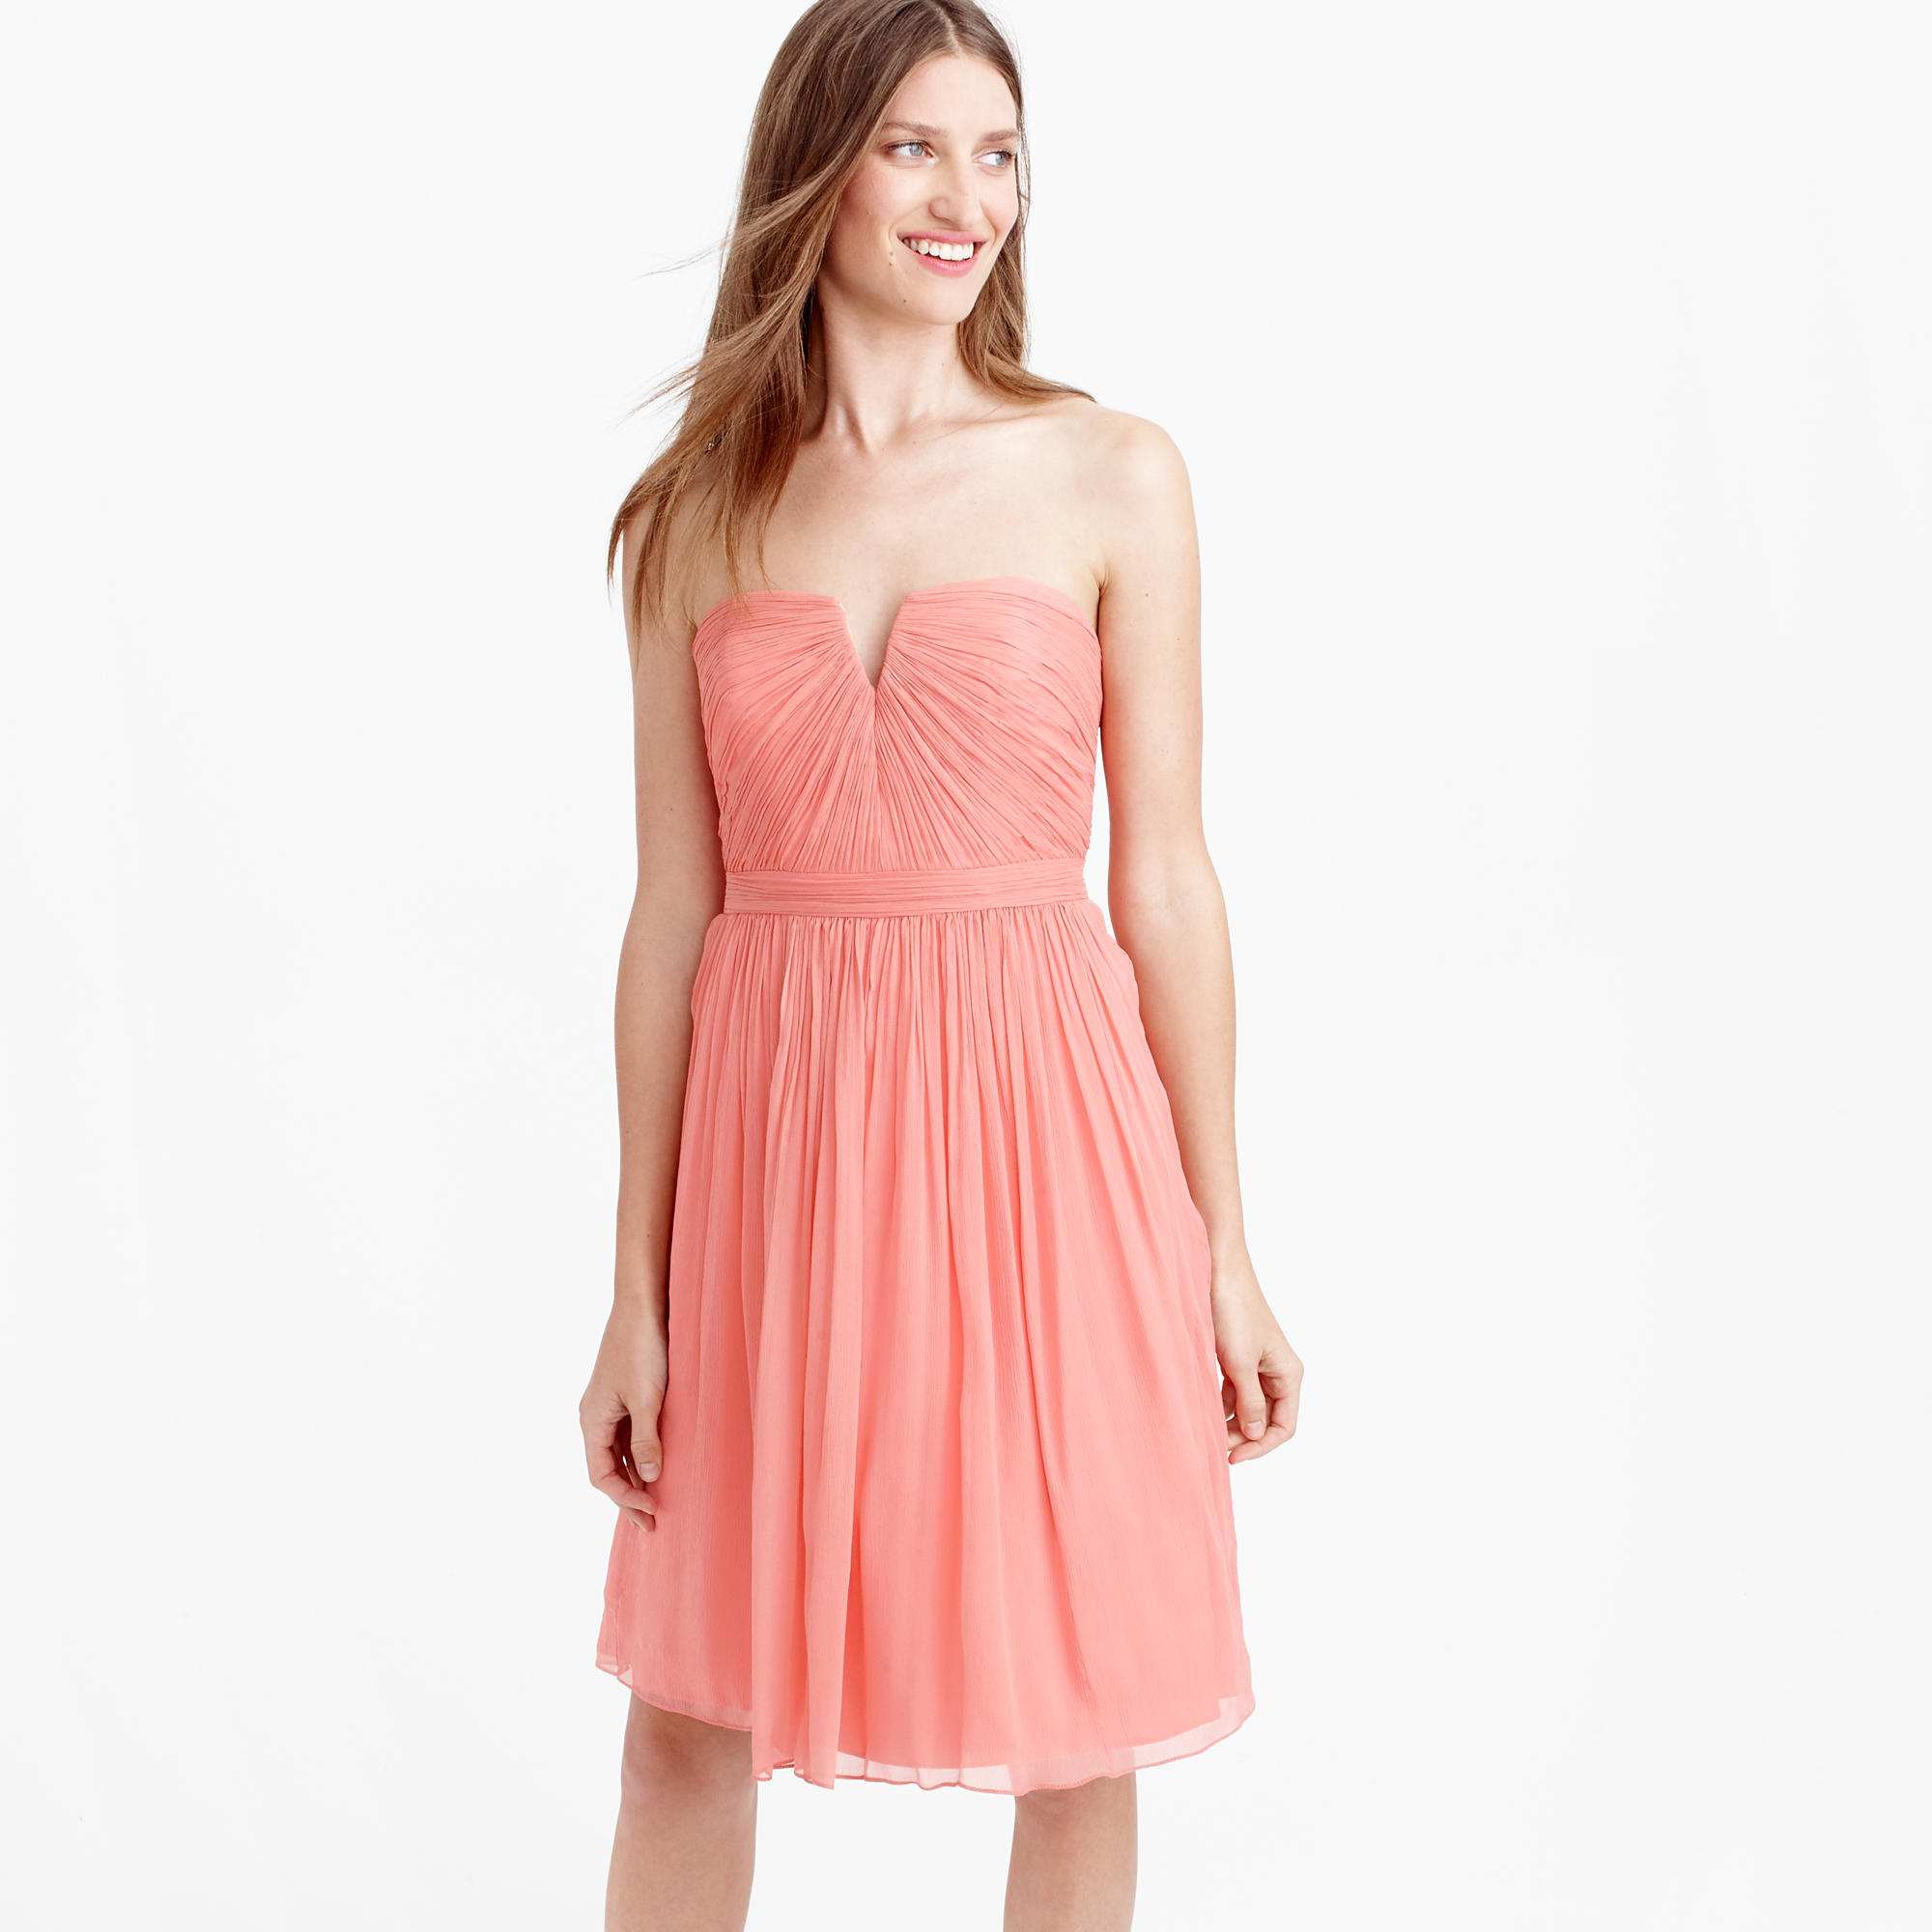 Nadia dress in silk chiffon in orange lyst for J crew beach wedding dress